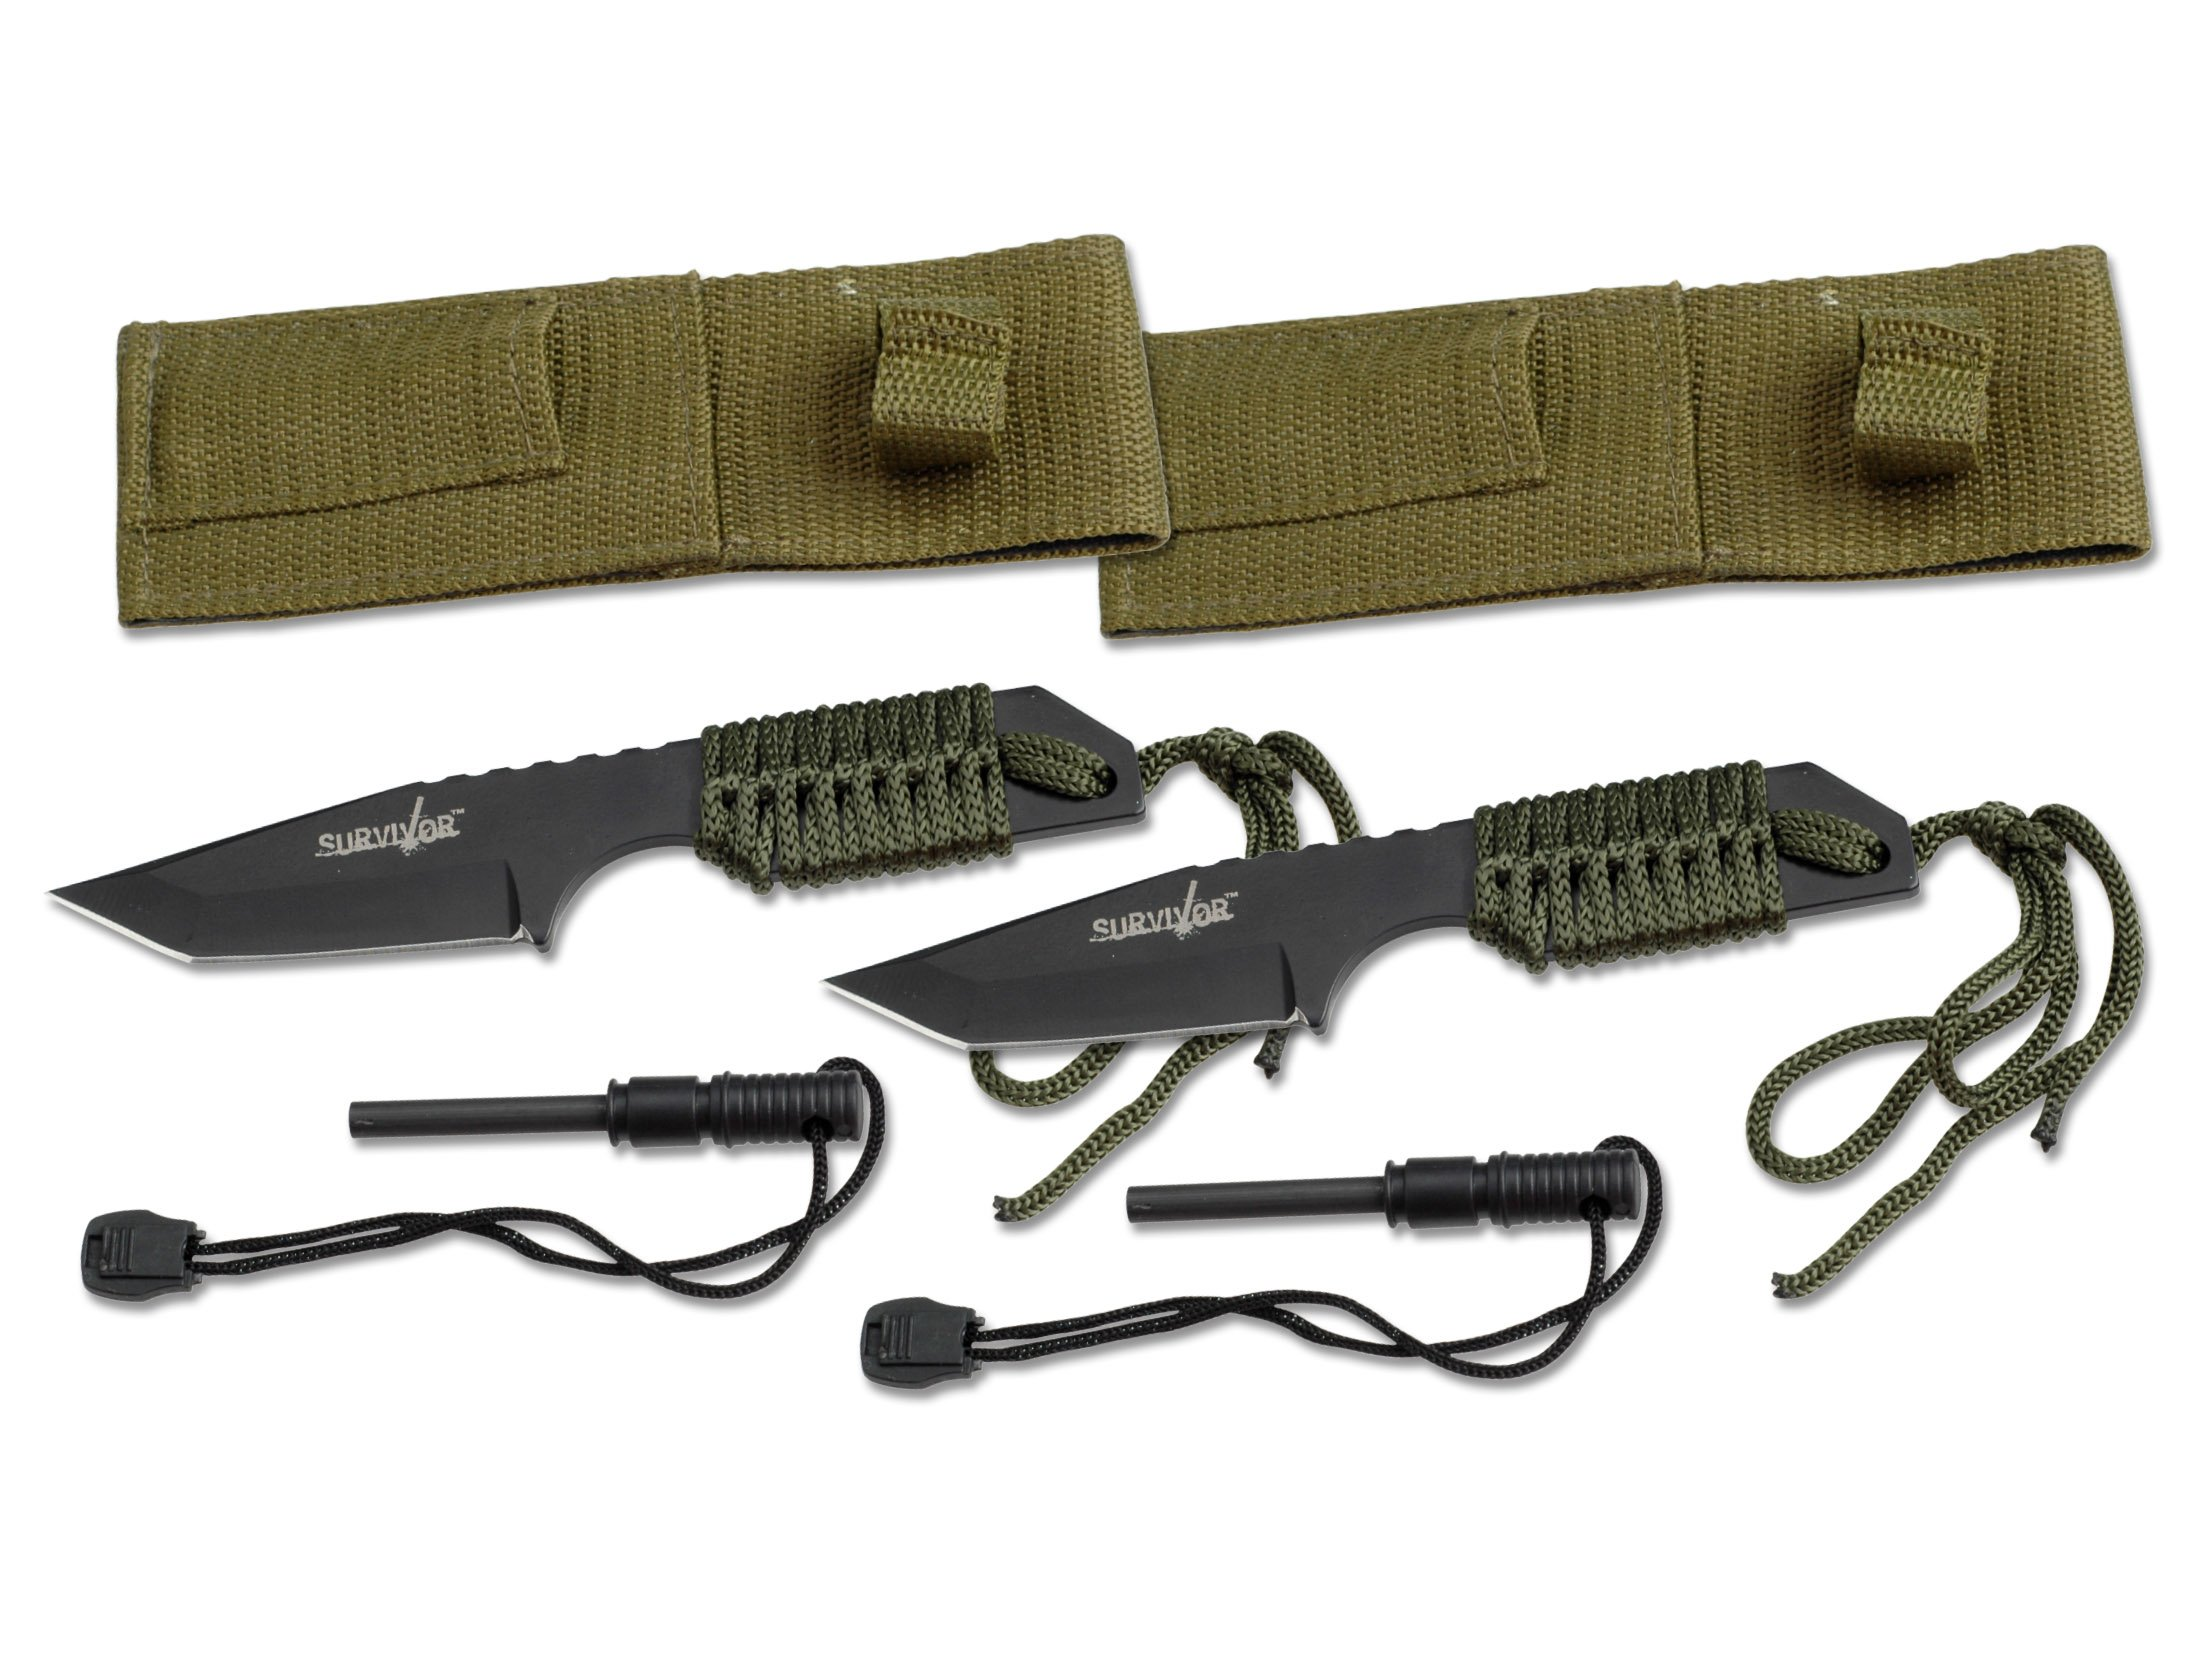 Survivor HK 106320 2 HK 106320 Outdoor Cord Wrapped